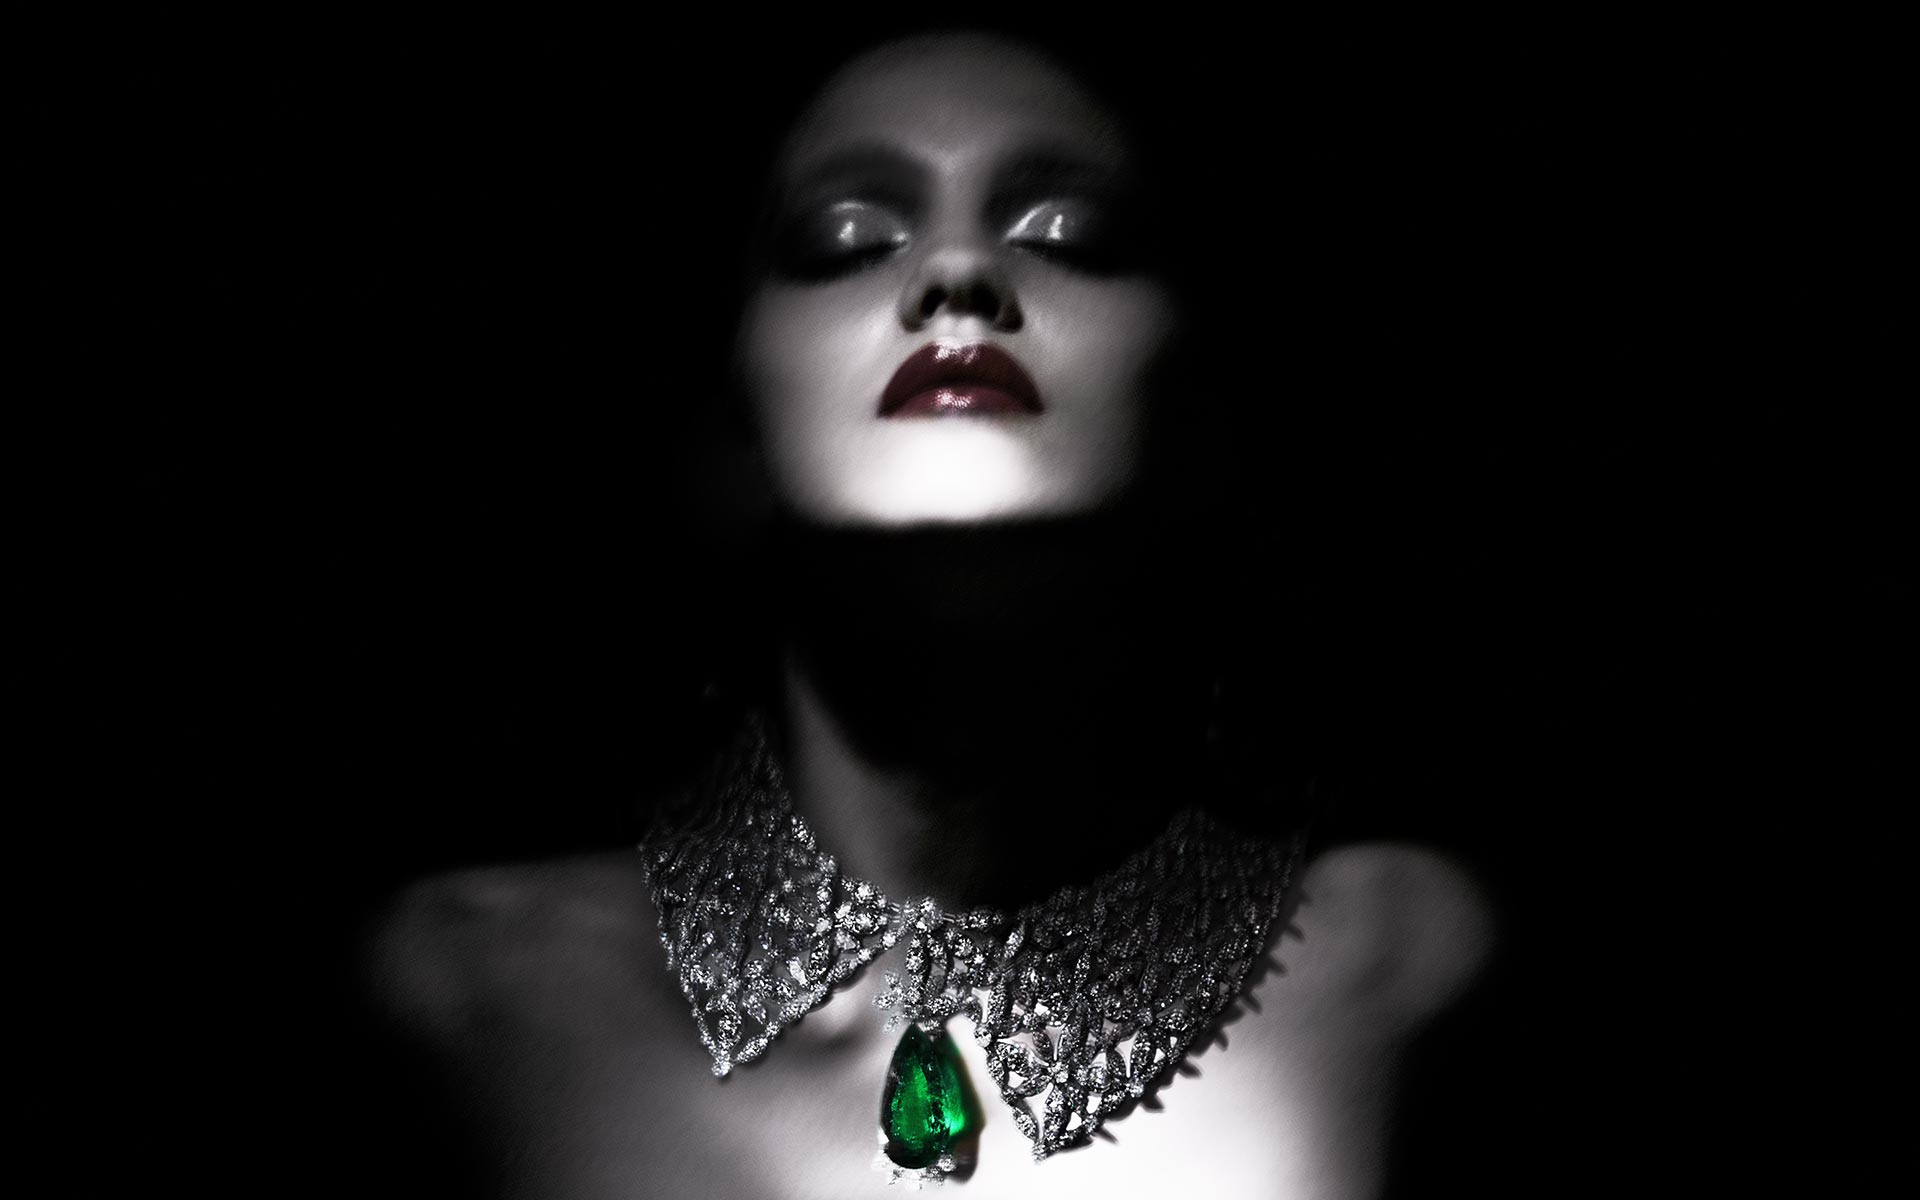 Lady with a Chopard necklace.